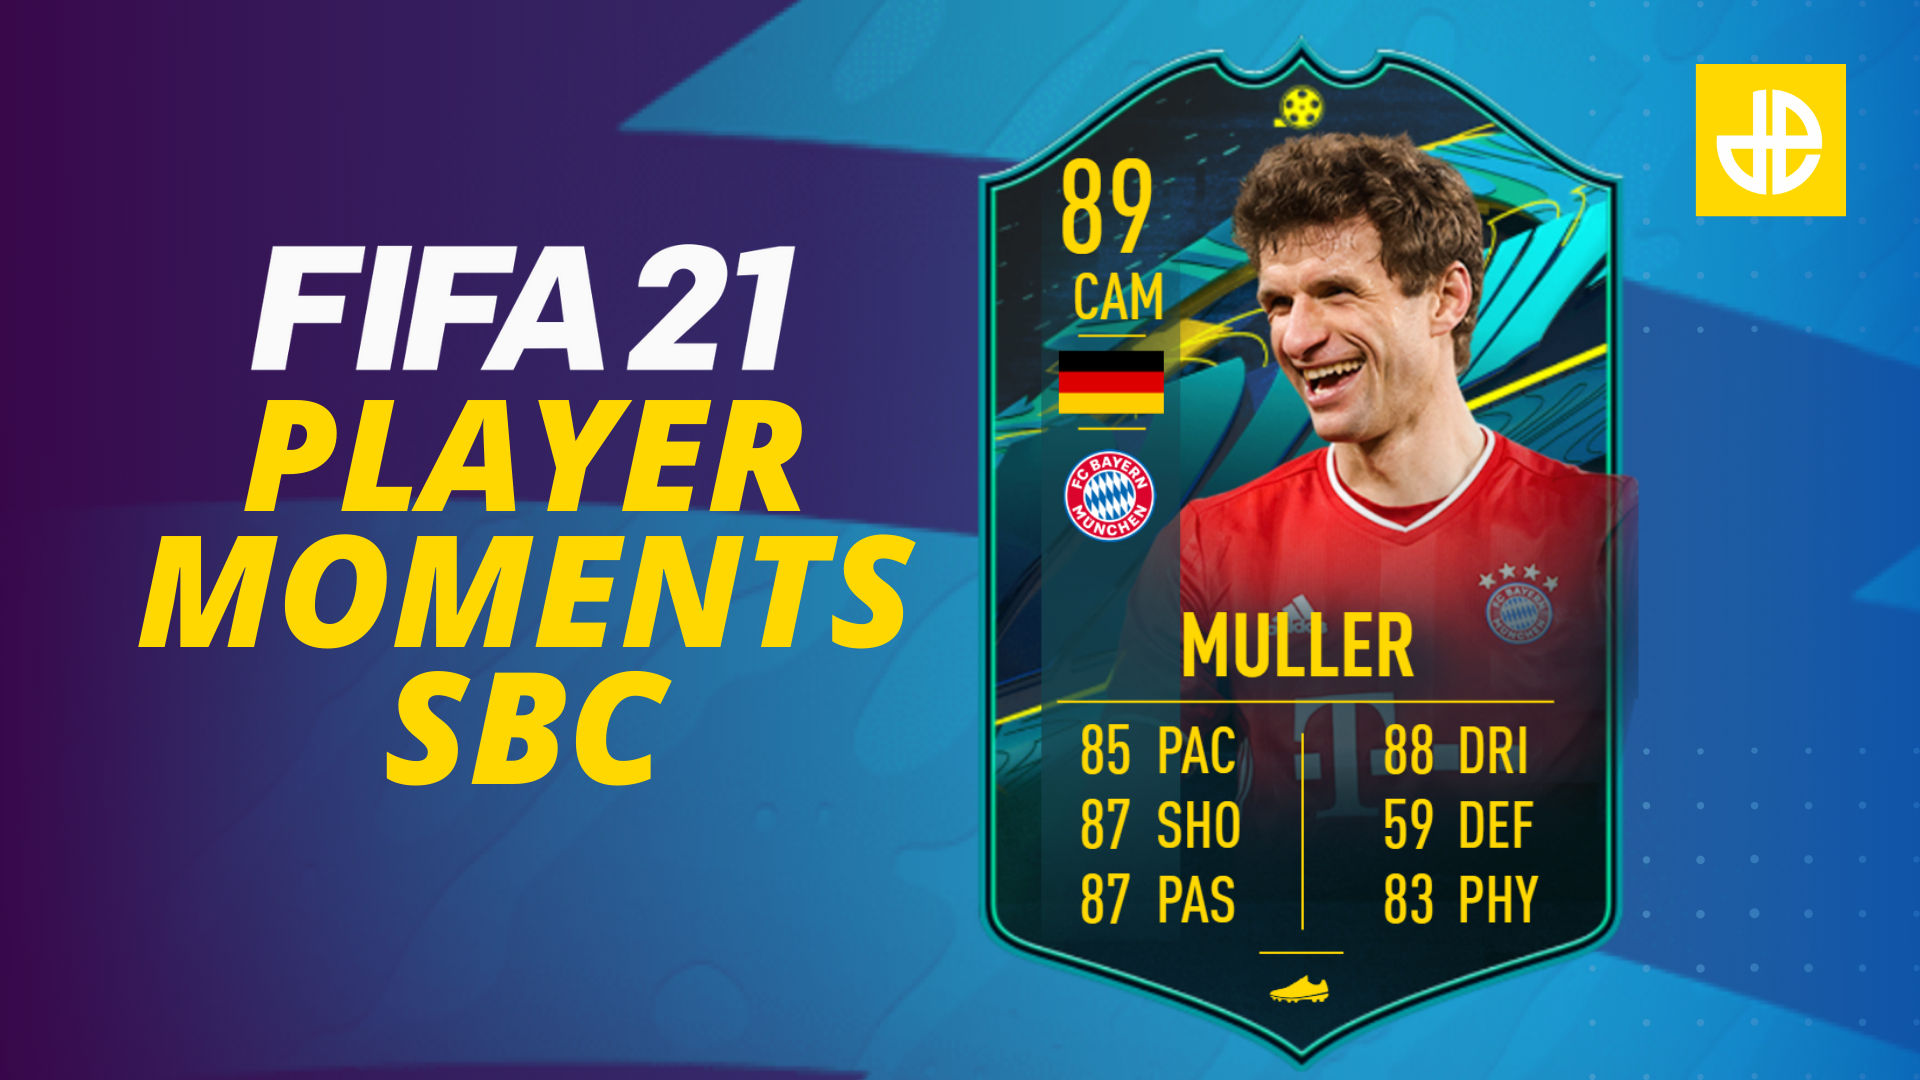 Thomas Muller FIFA 21 Player Moments SBC